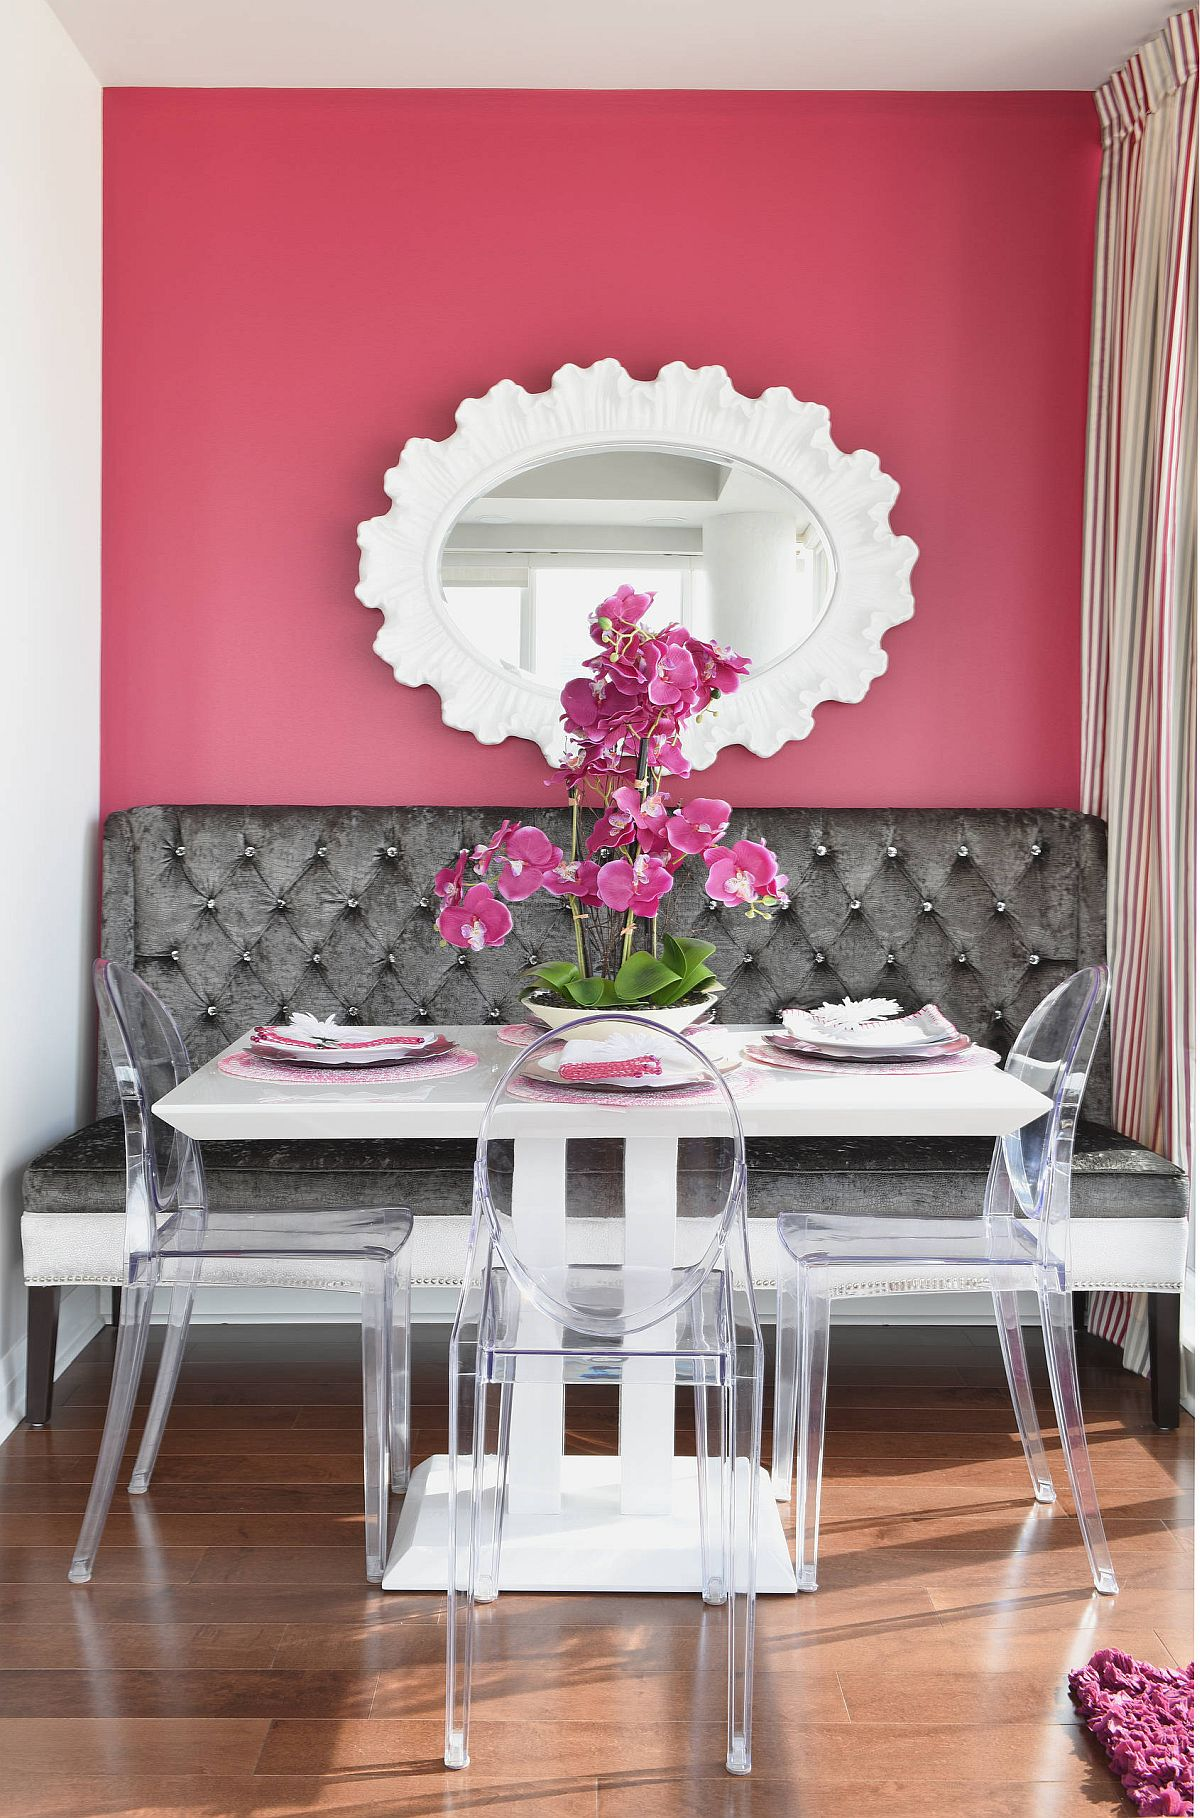 Banquette style dining room wth sofa-styled seating on one side and acrylic chairs on the other along with accent pink wall